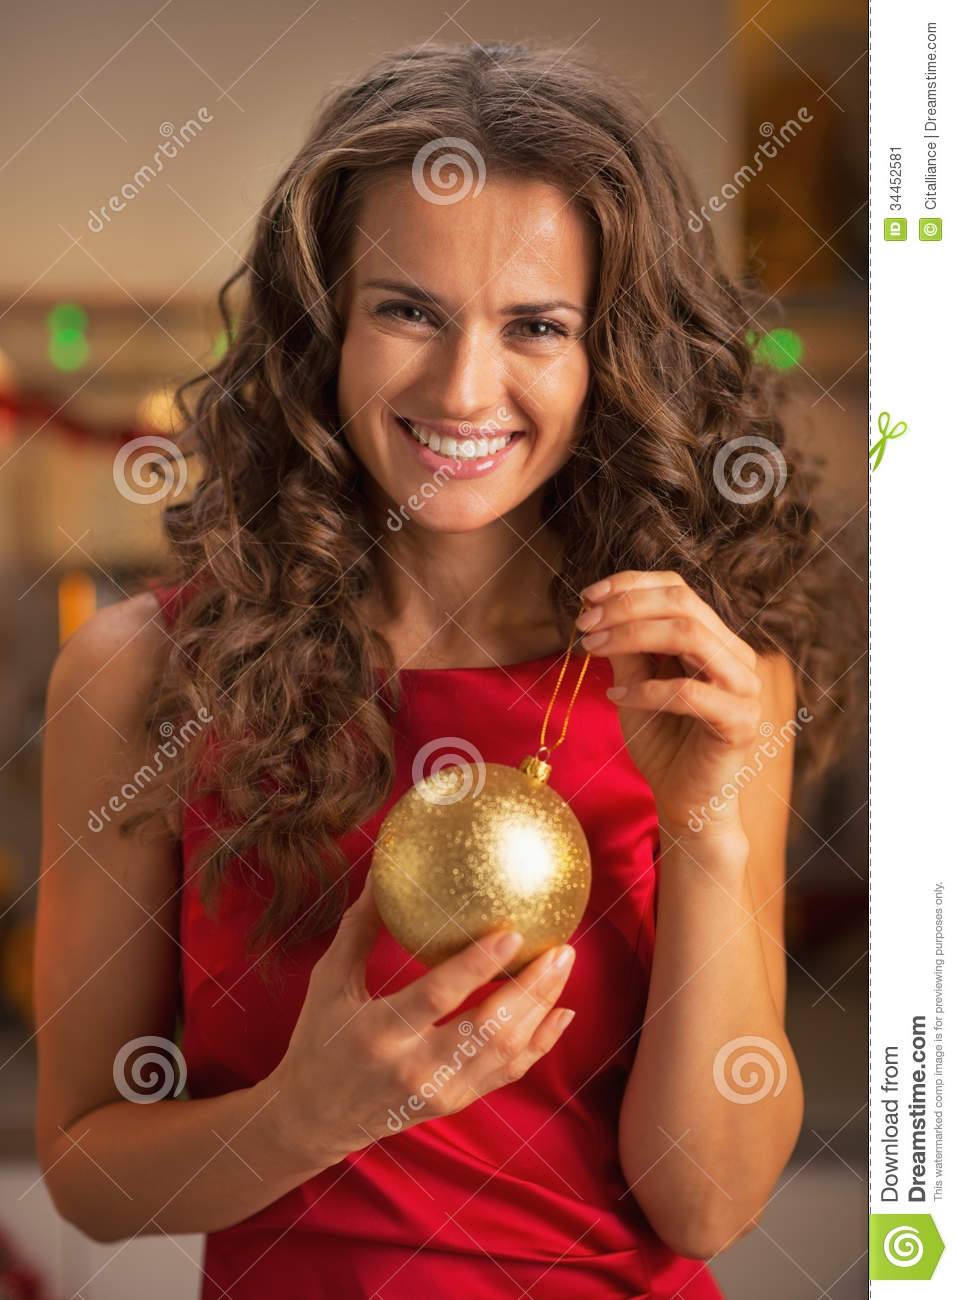 Smiling young woman in red dress holding christmas ball stock image